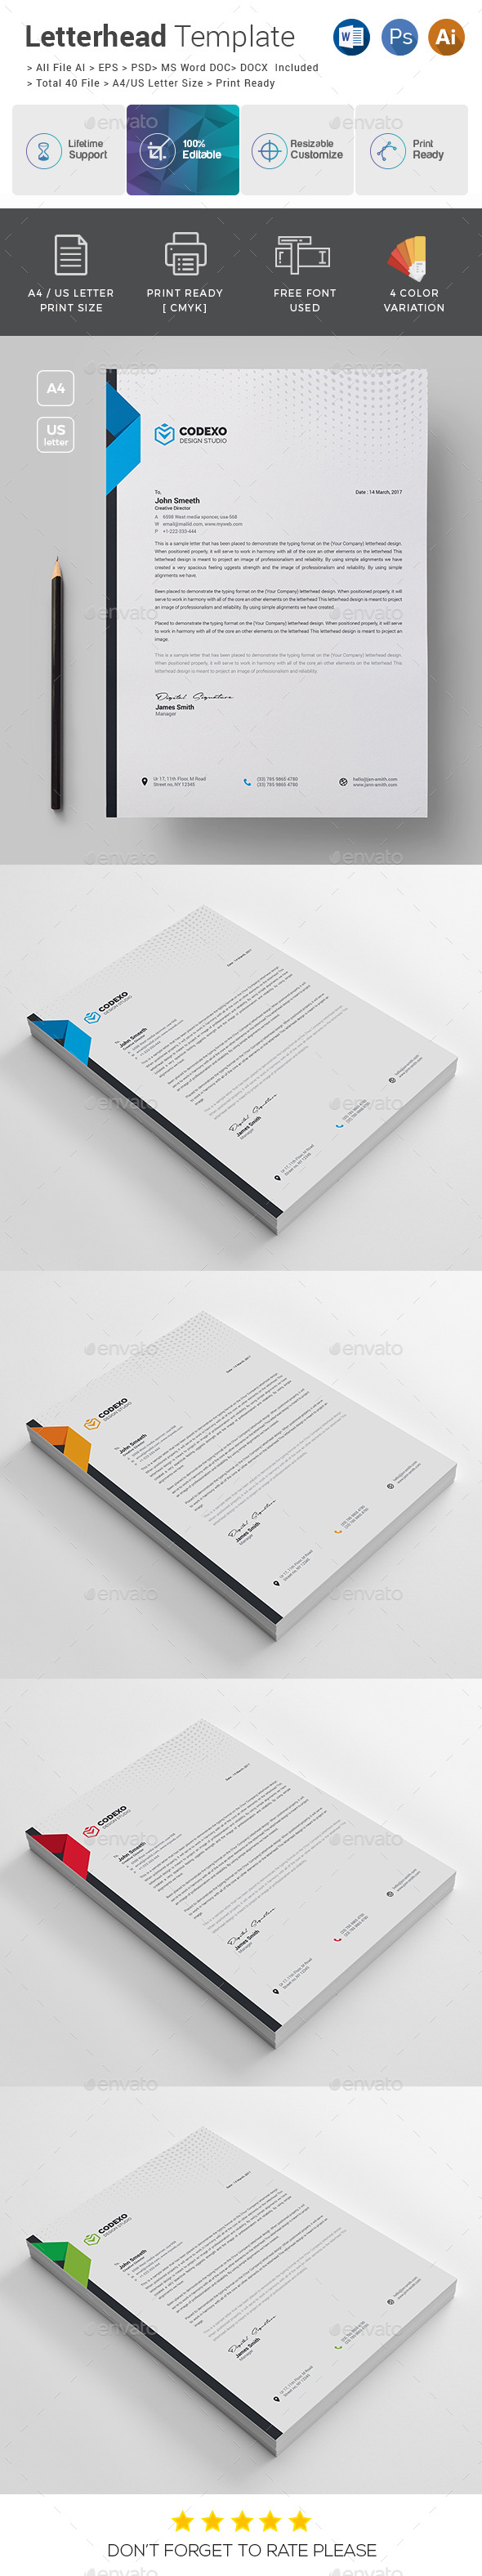 Letterhead graphics designs templates from graphicriver spiritdancerdesigns Choice Image